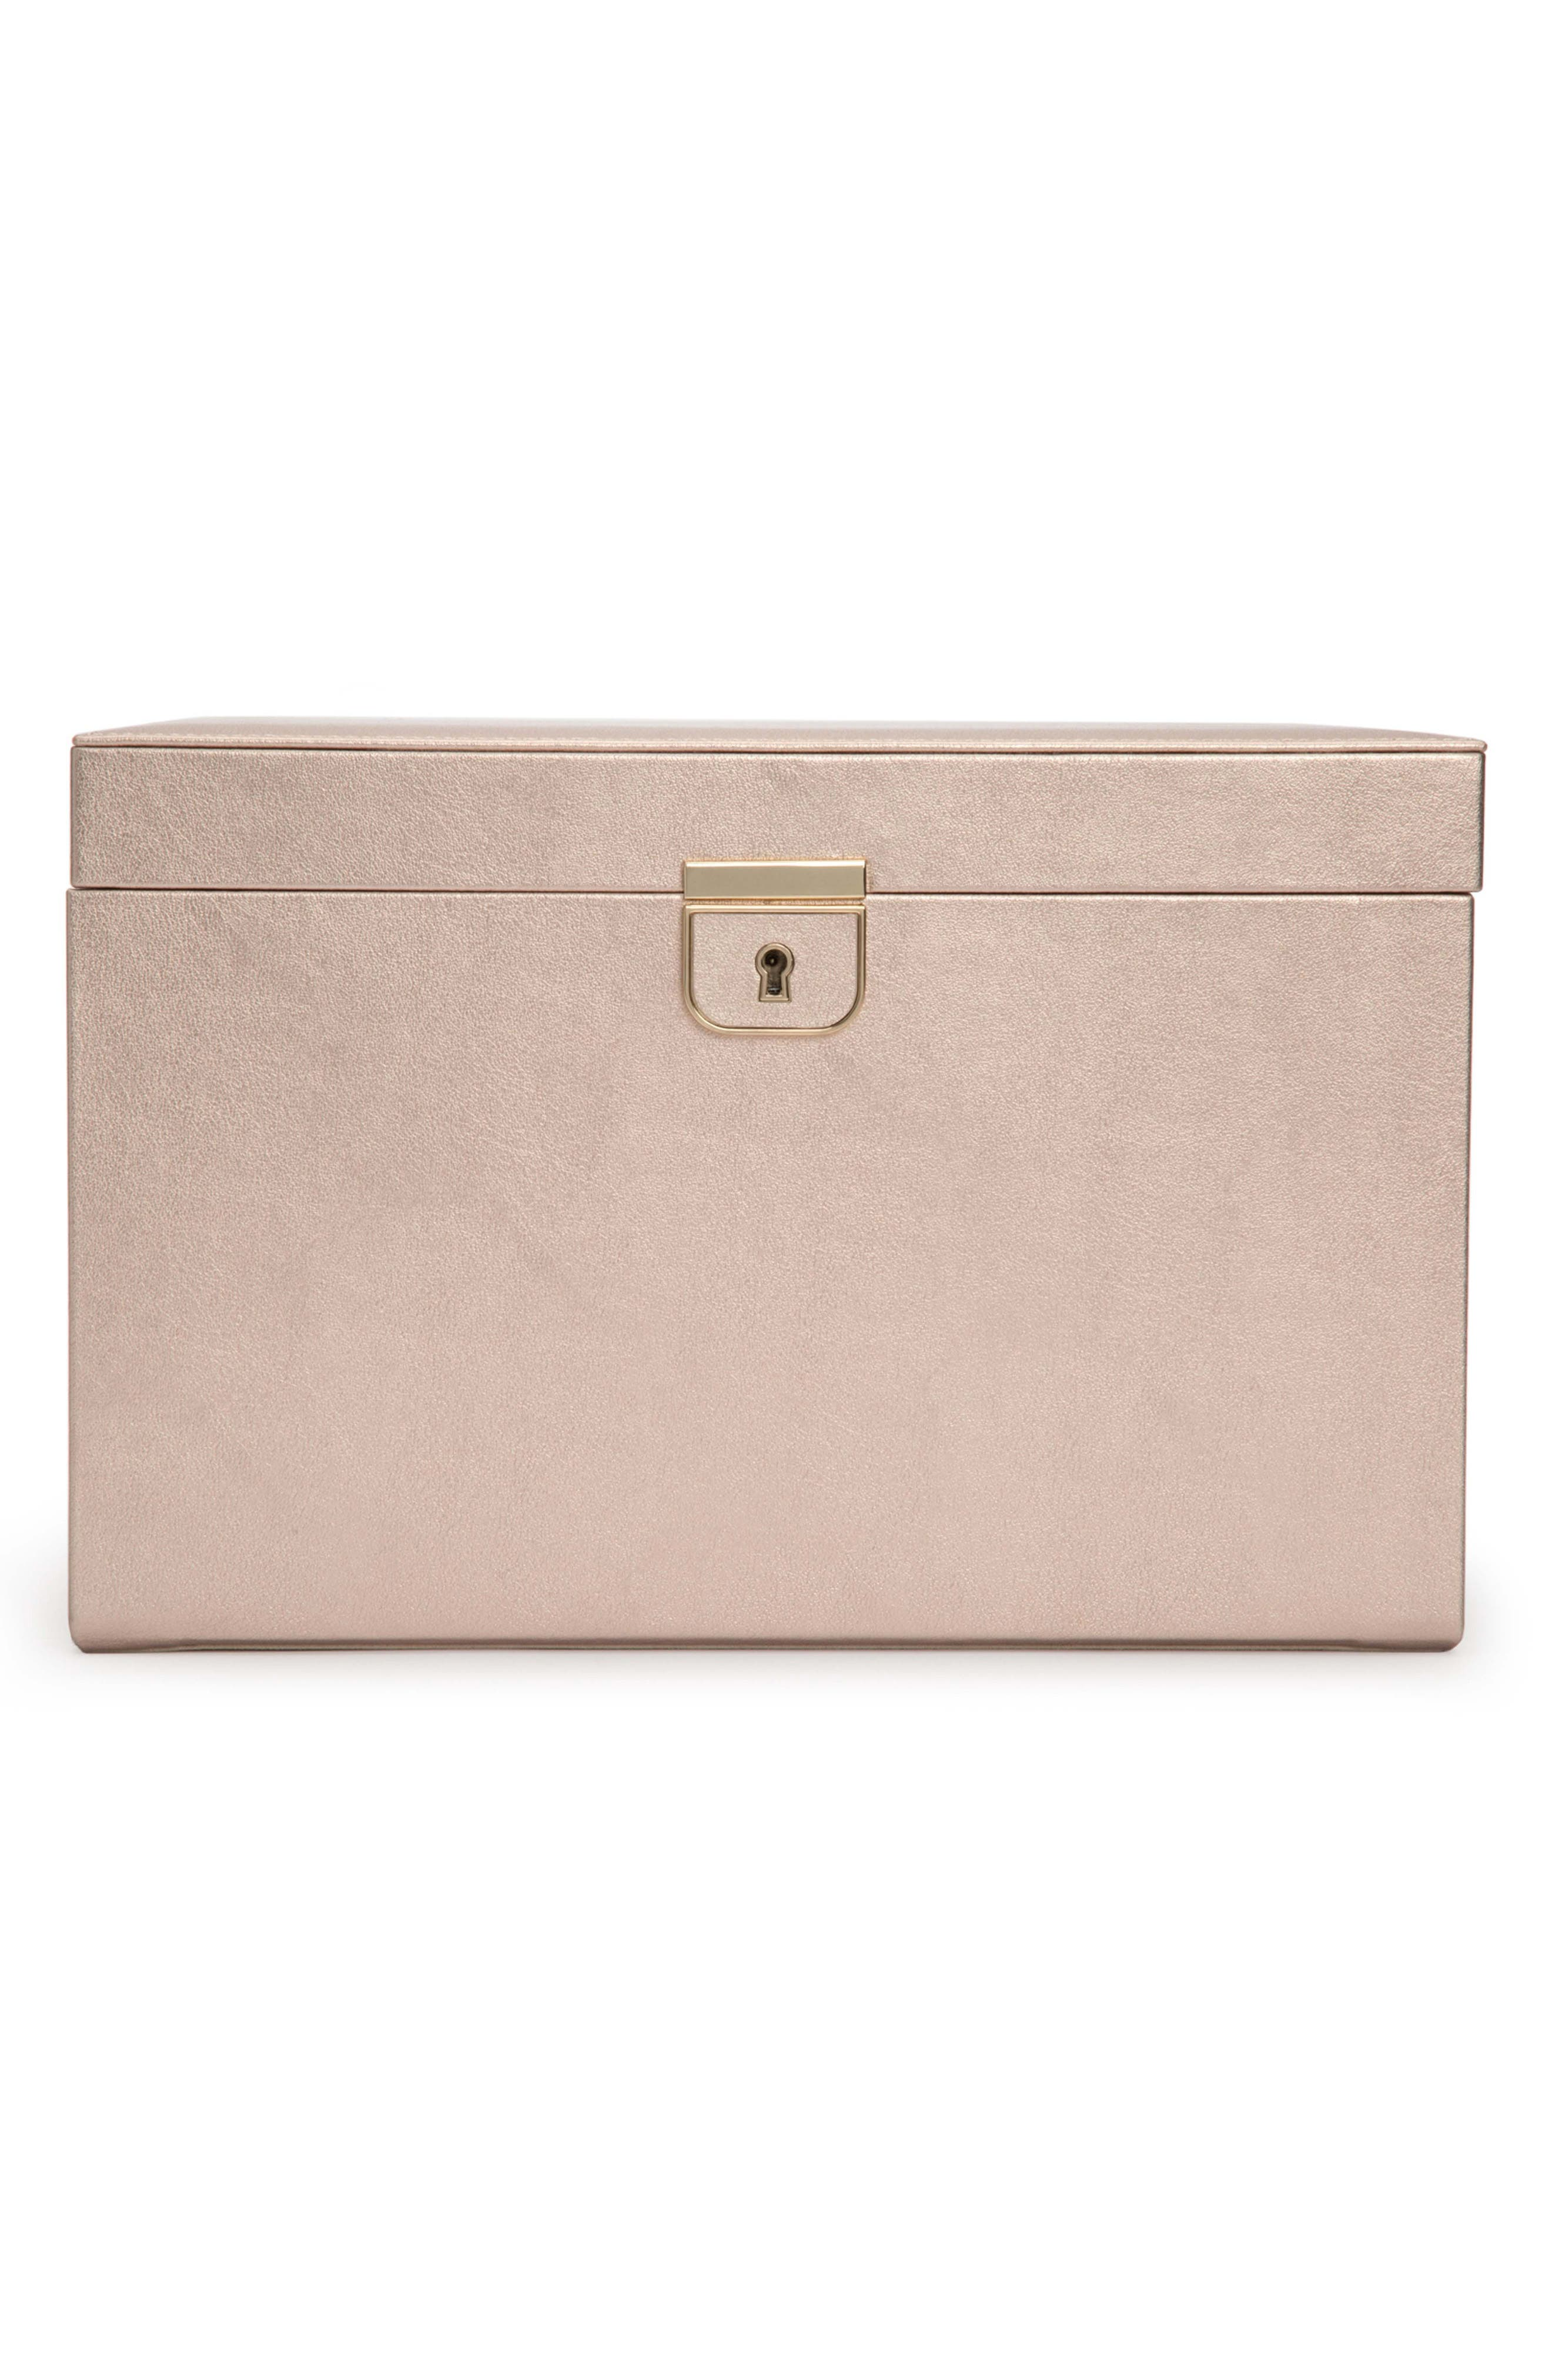 Palermo Large Jewelry Box,                             Main thumbnail 1, color,                             ROSE GOLD